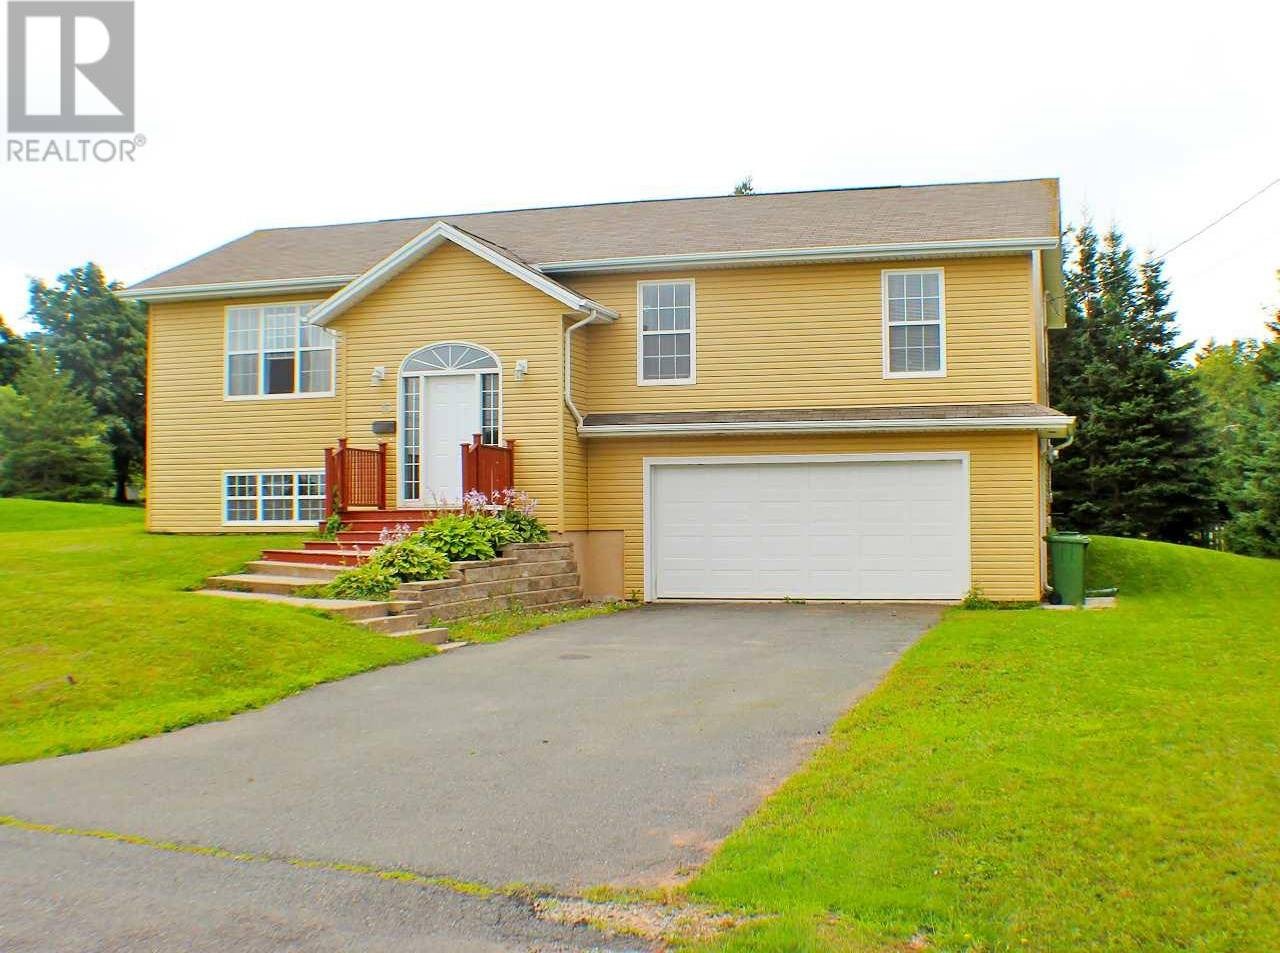 House for sale at 18 Harland View Dr Stratford Prince Edward Island - MLS: 201926883